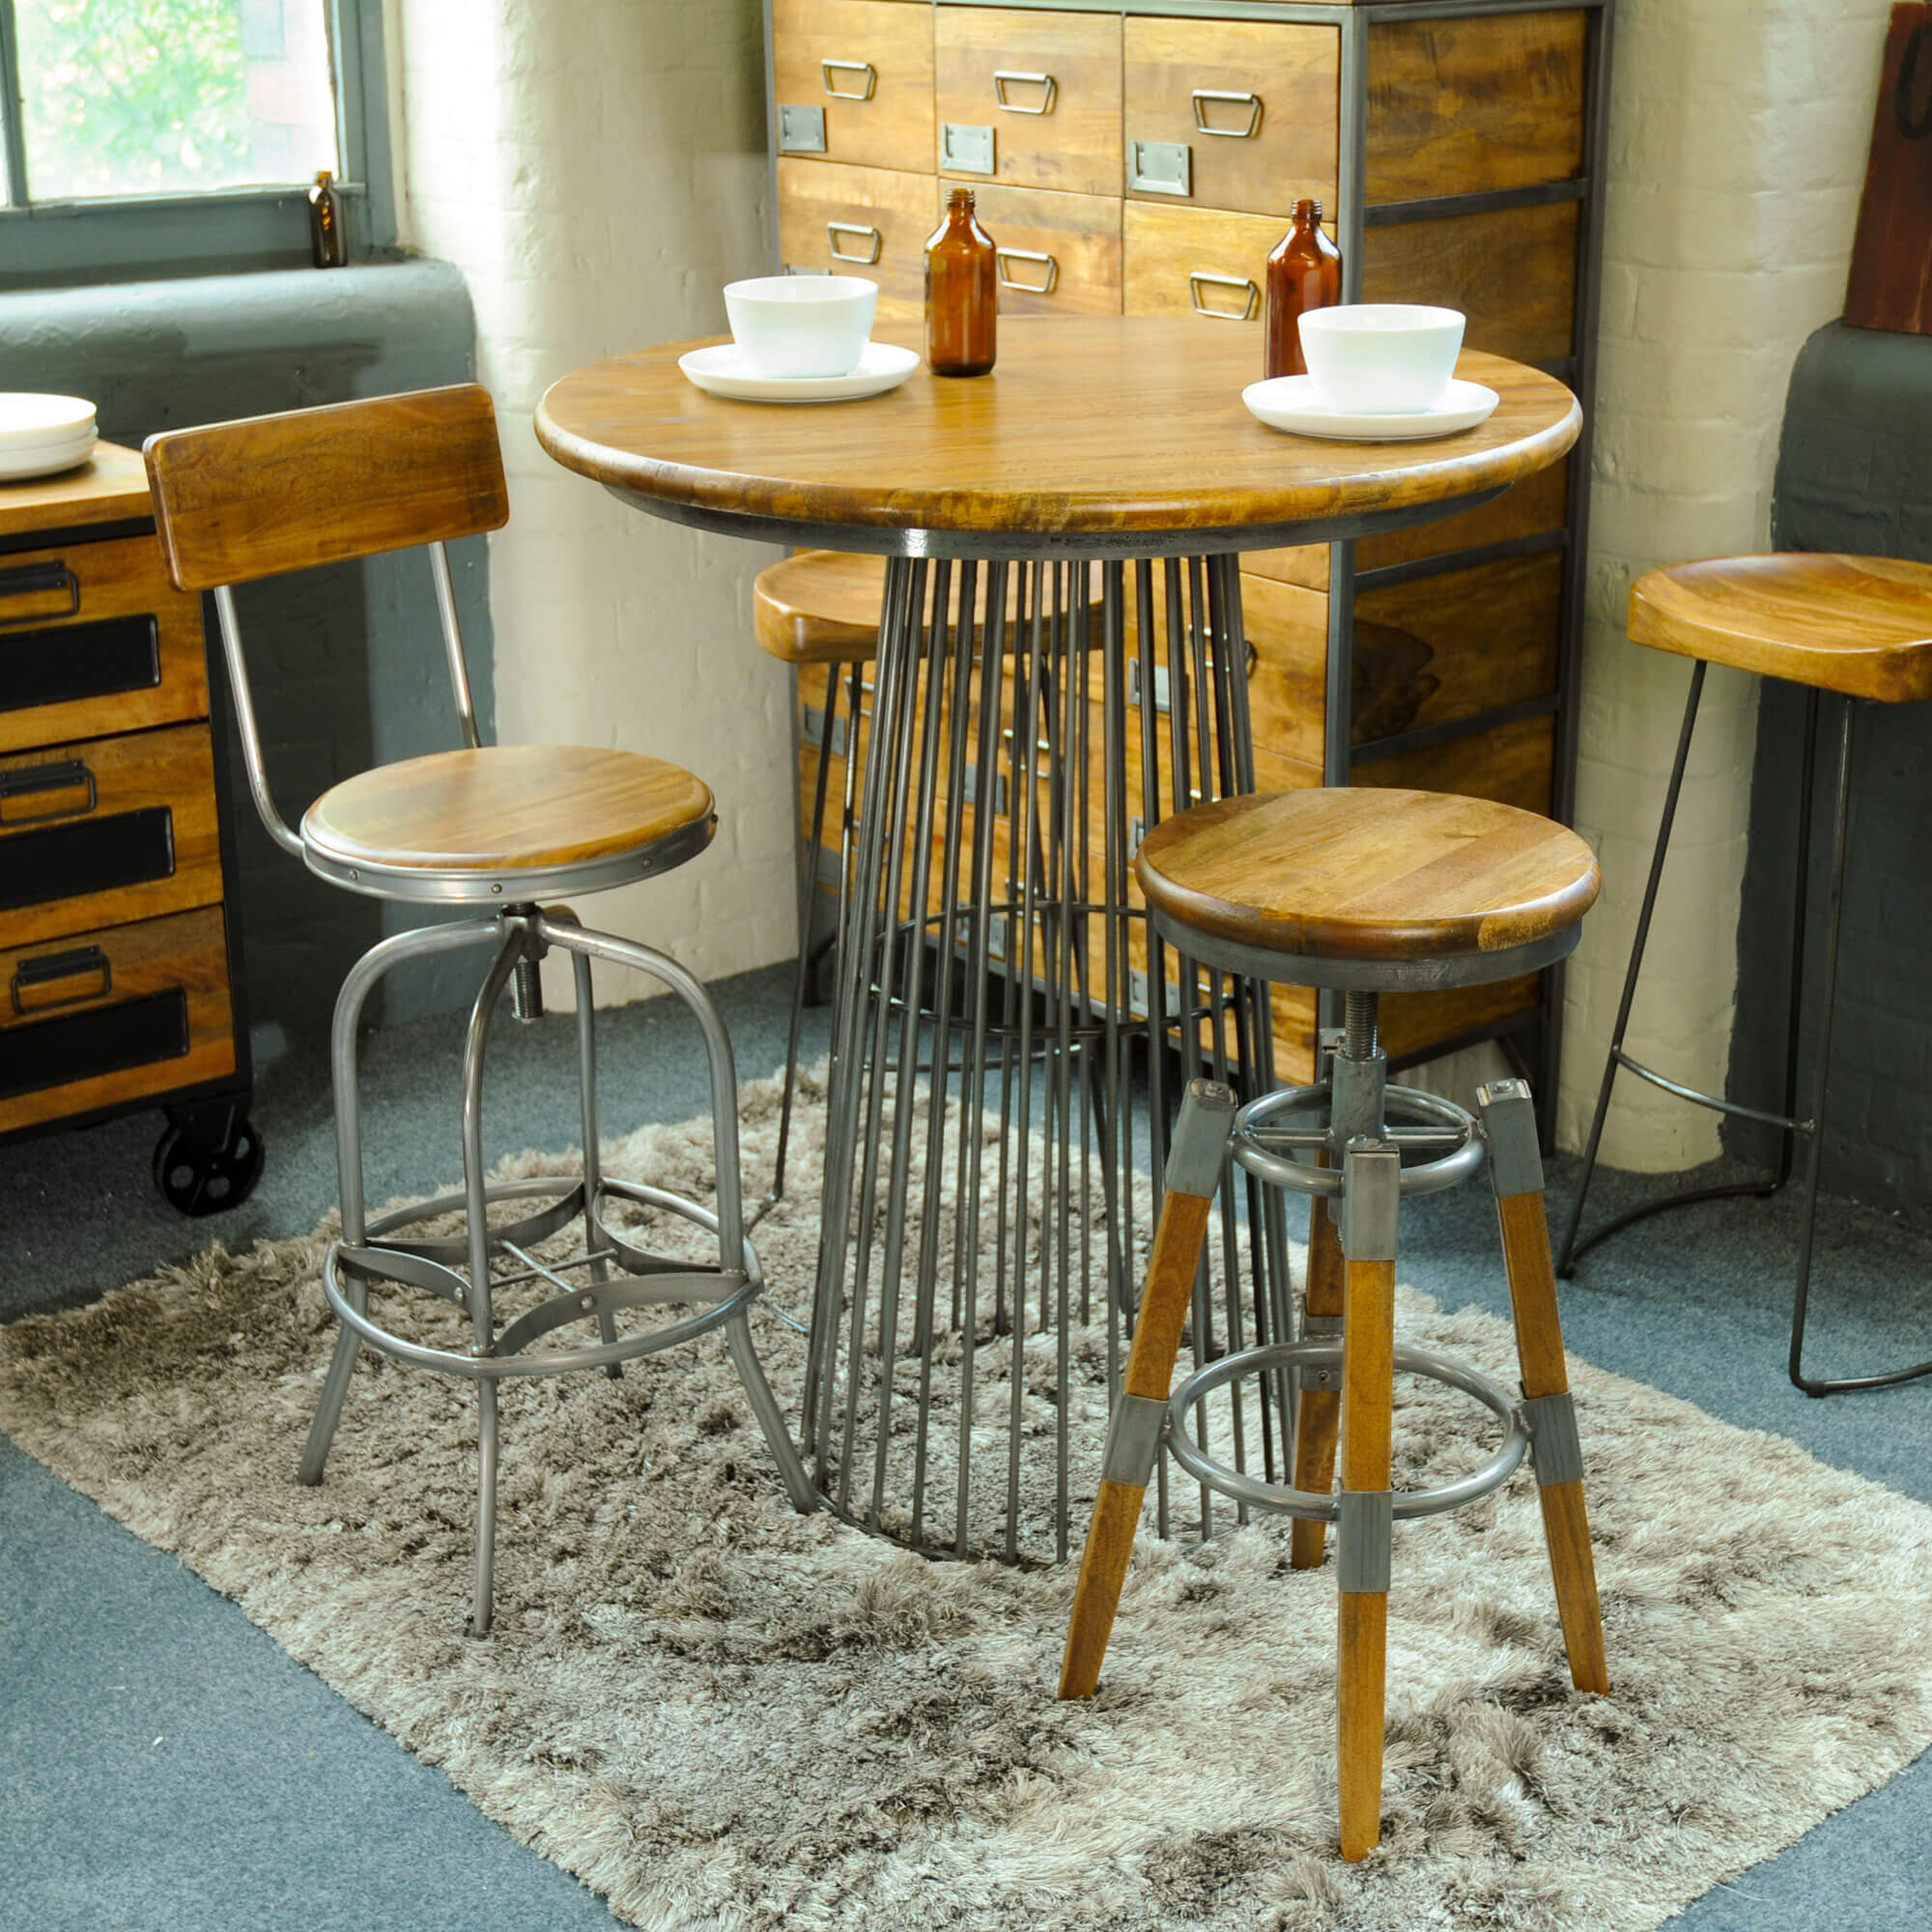 Urban Bar Stool with Back Rest